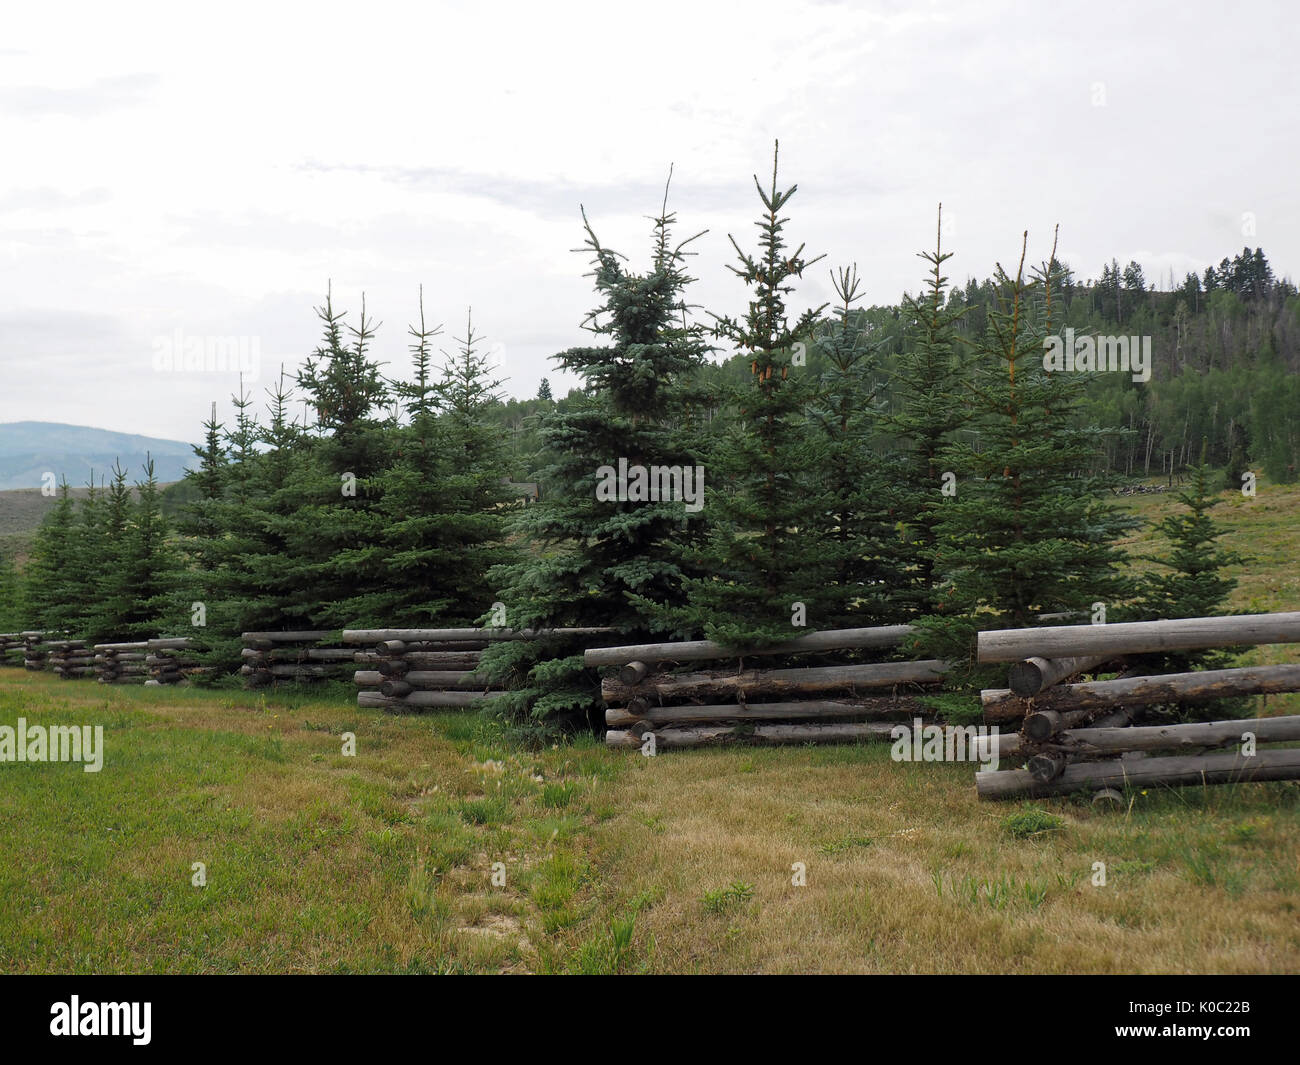 evergreen trees by a log fence - Stock Image